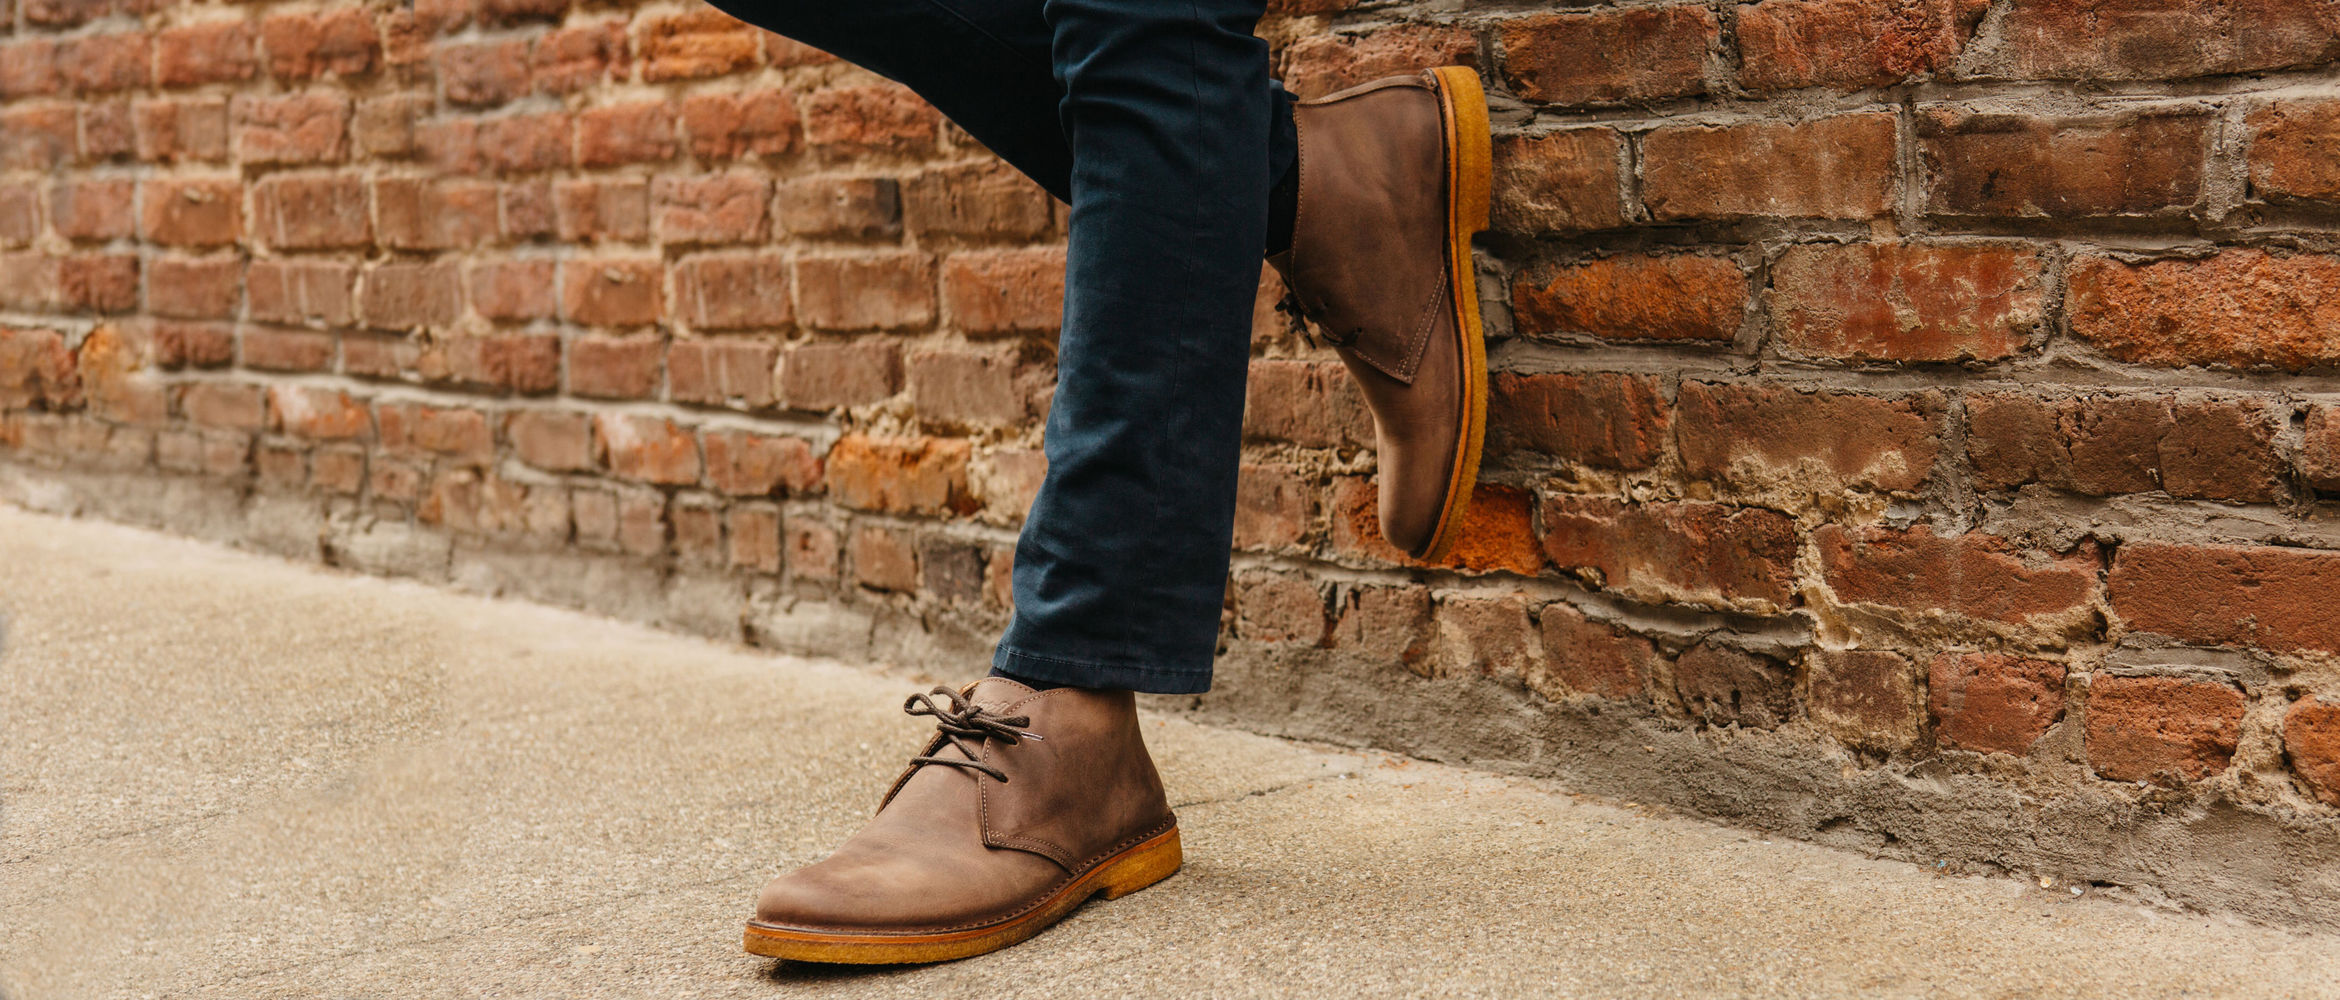 10 Best Men's Boots for Fall 2019 | Huckberry